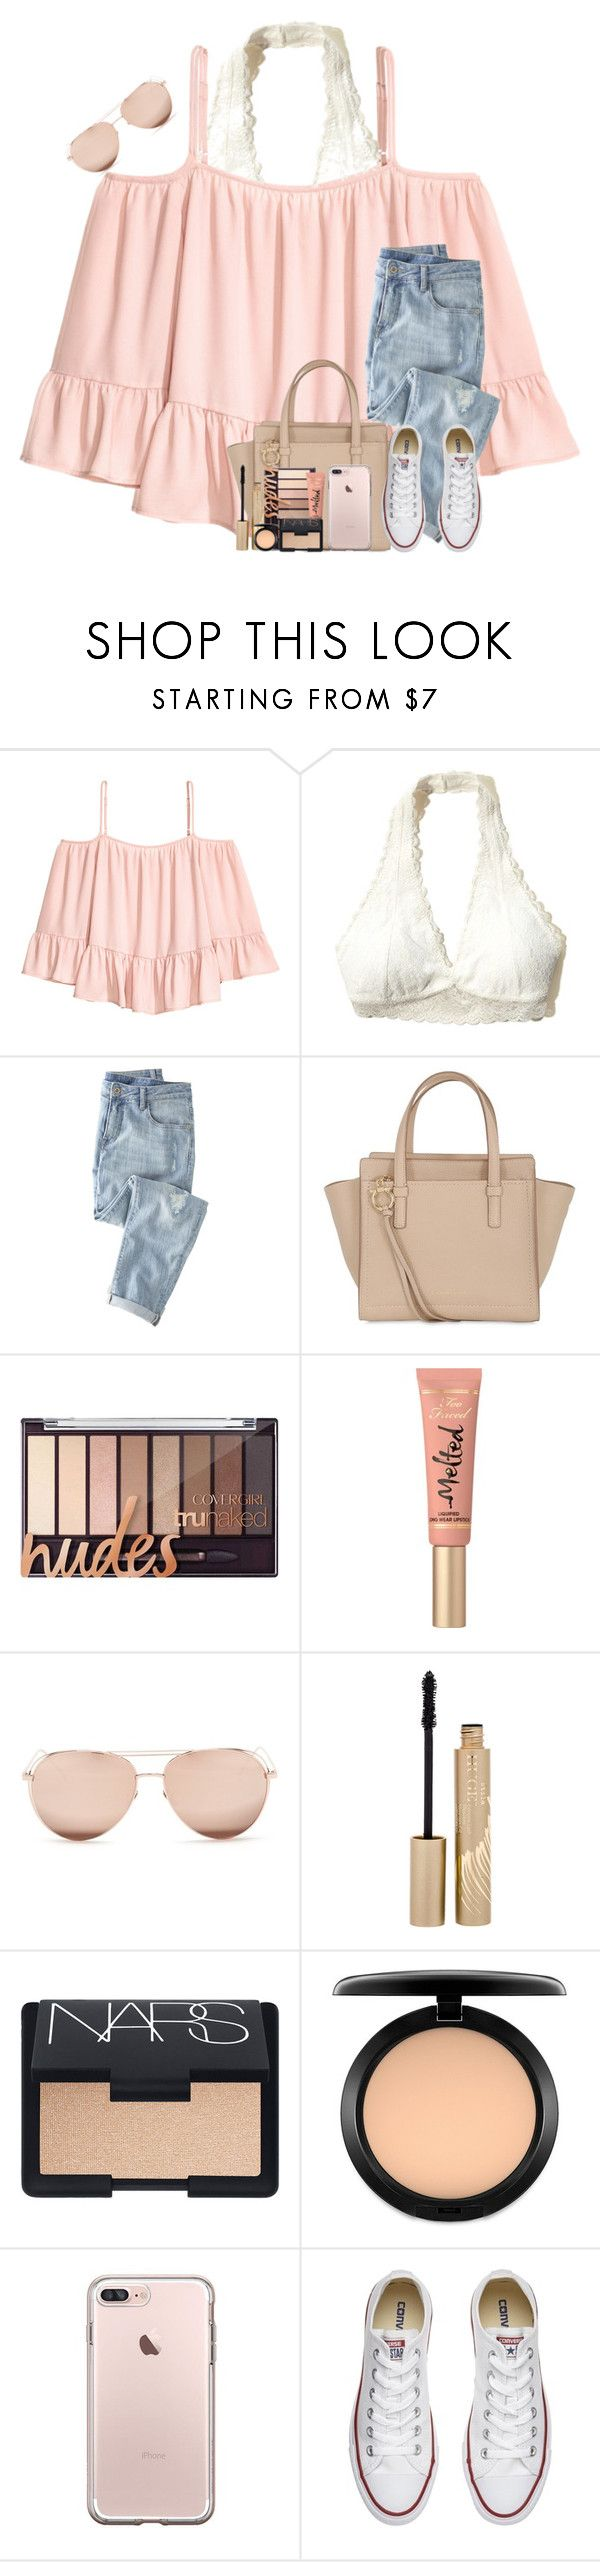 Blizzard Coming Tonight!!❄️❄️ by theafergusma ❤ liked on Polyvore featuring Volant, Hollister Co., Wrap, Salvatore Ferragamo, Too Faced Cosmetics, Linda Farrow, Stila, NARS Cosmetics, MAC Cosmetics and Converse